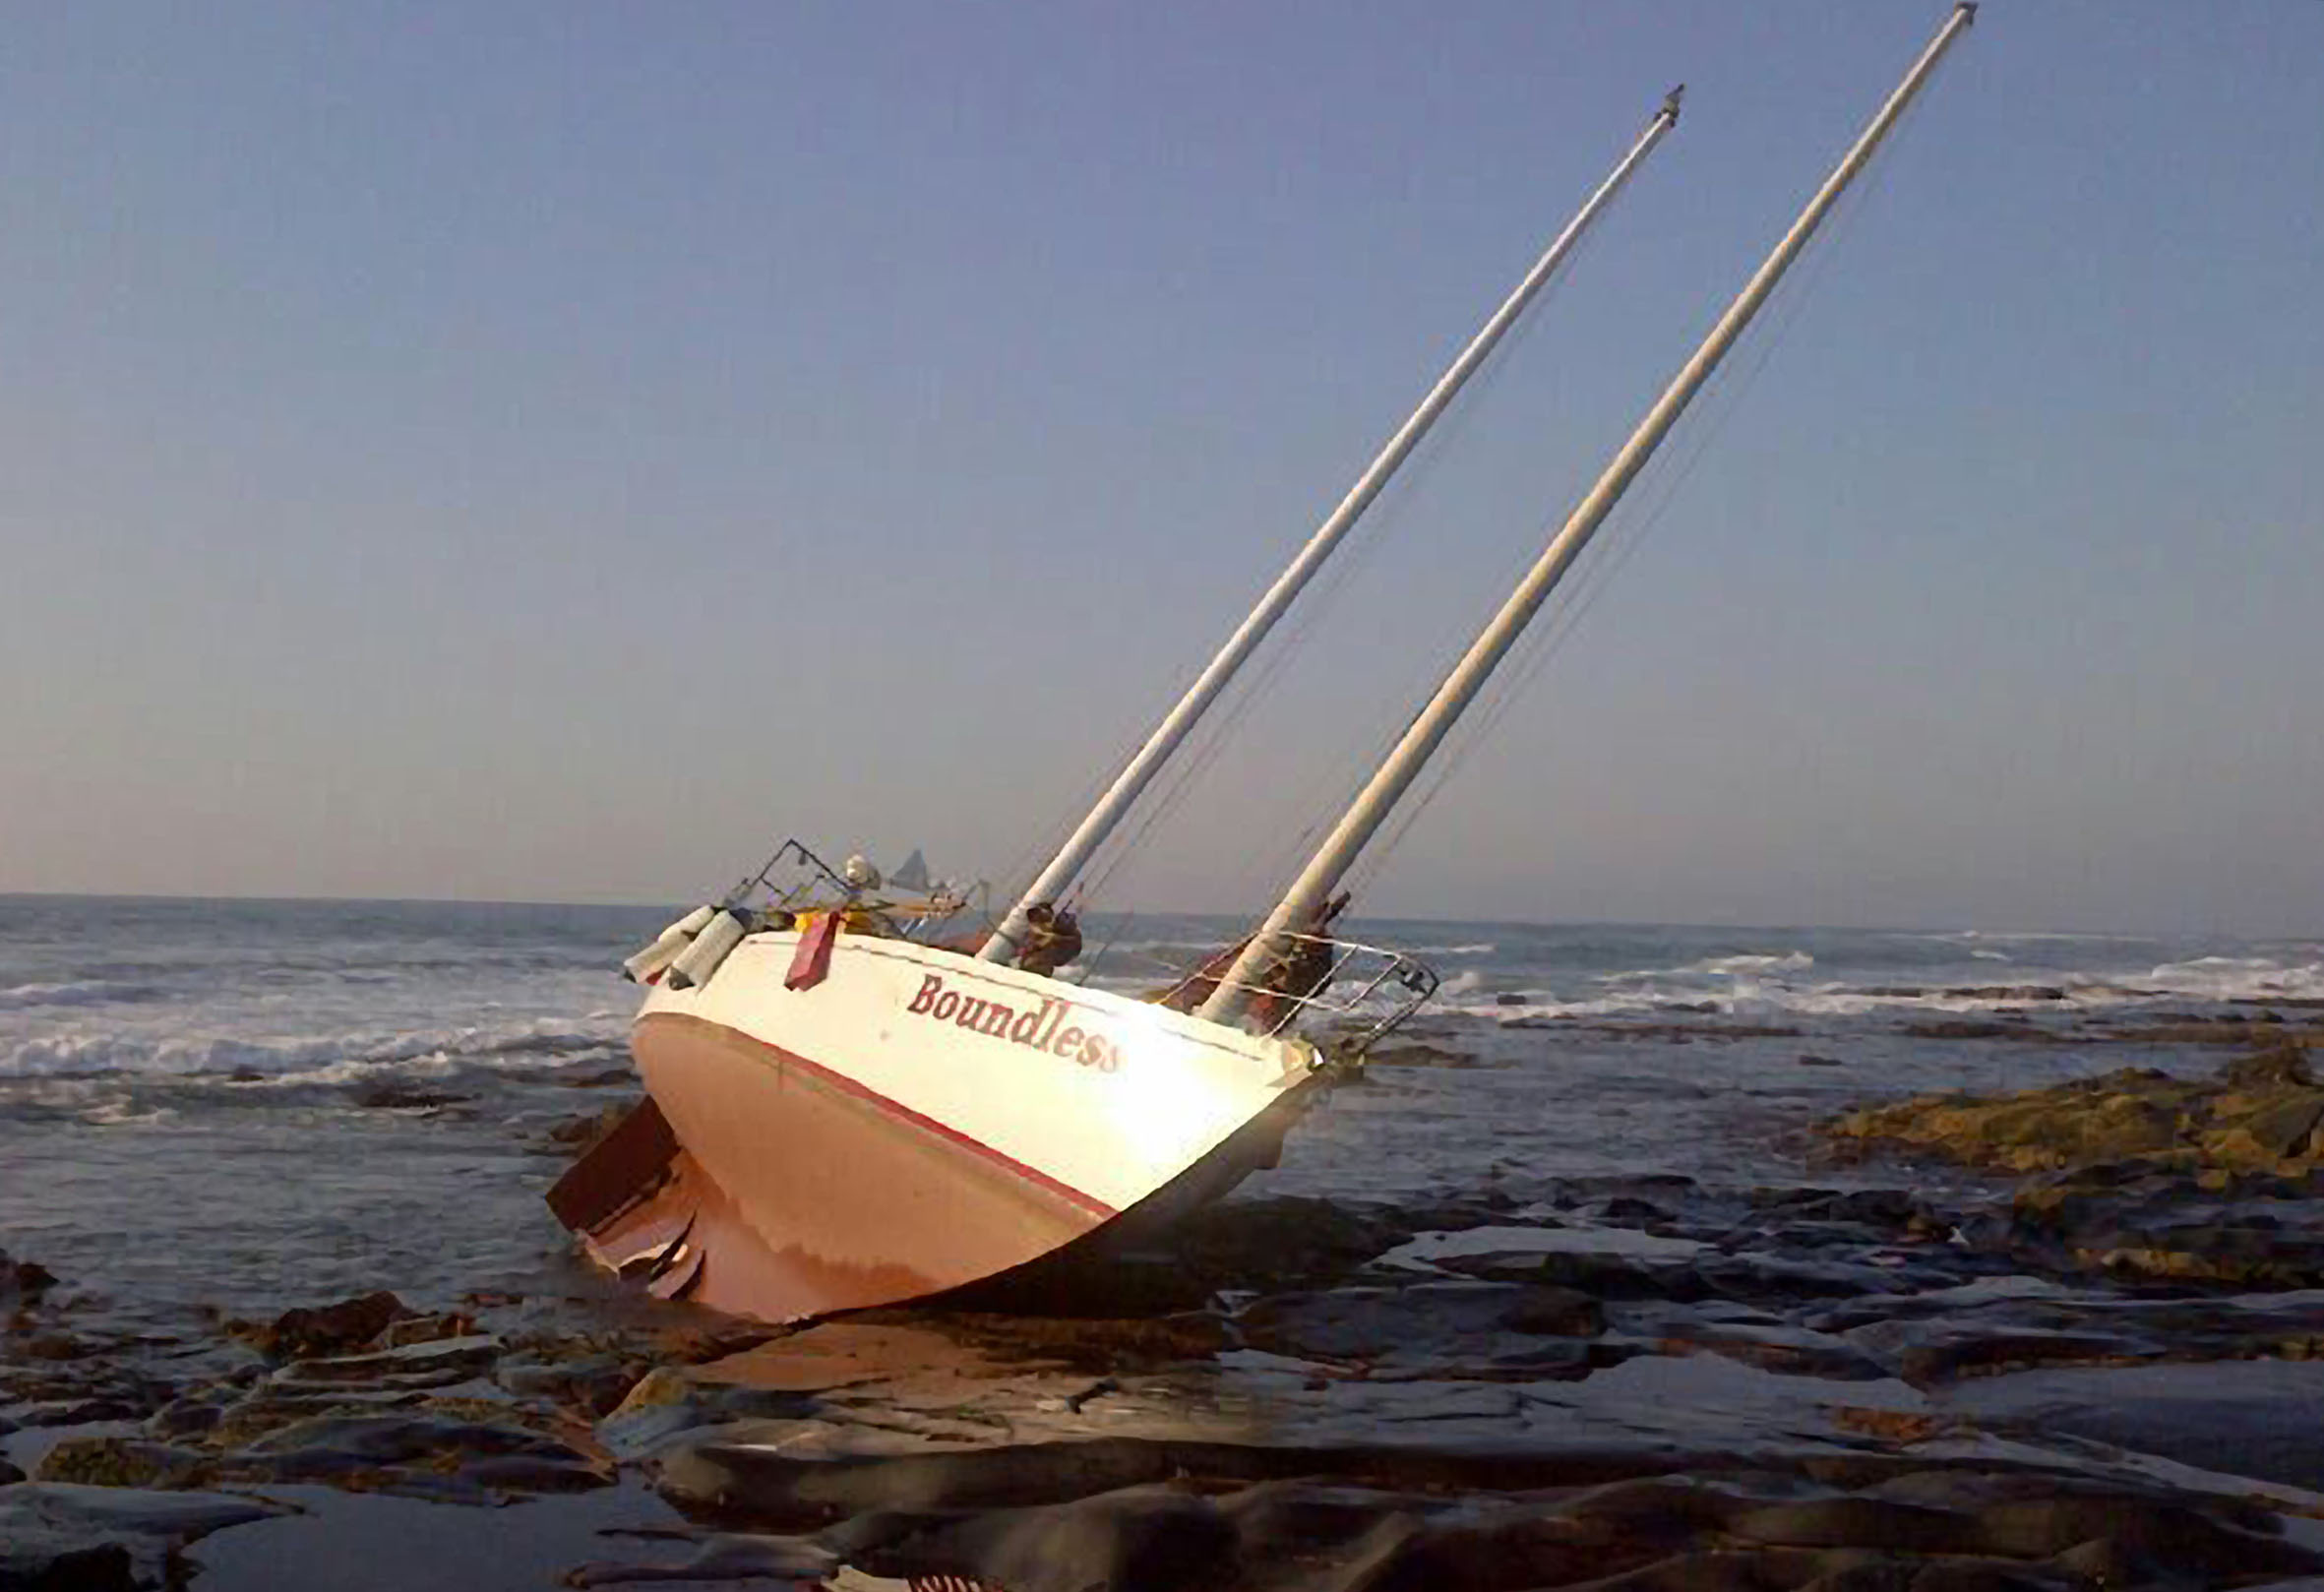 The Boundless aground at